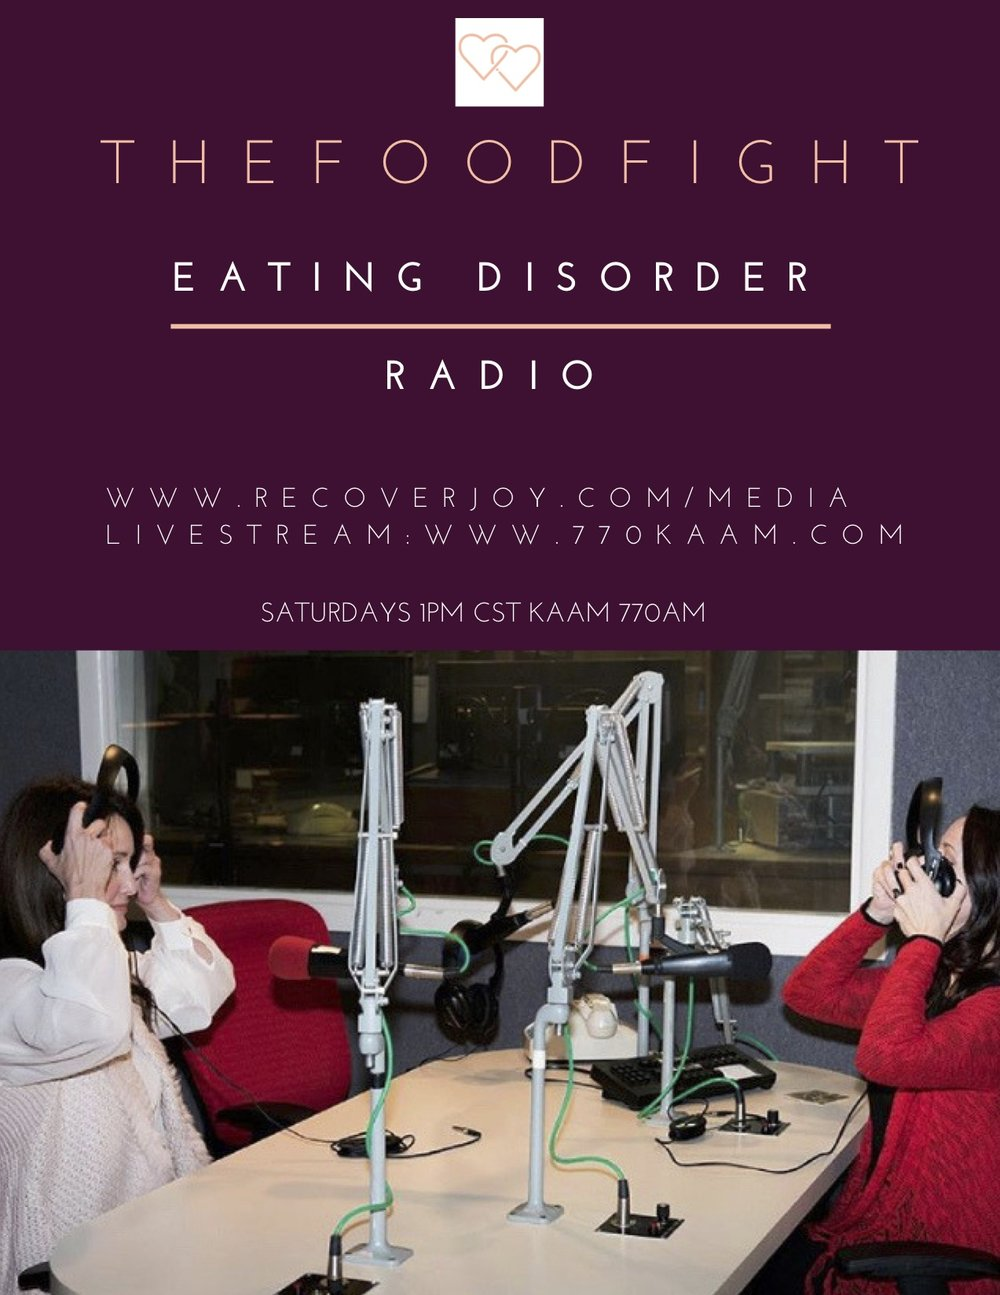 The Food Fight - Cravings, Dallas Nutritional Counseling, Casey Bonano RD, LD, CEDRD #dallasnutritionalcounseling #balancedeating #caseybonanord #dallasrd #dietitian #nutritionist #nondiet #intuitiveeating #foodforthought #thefoodfight #cravings